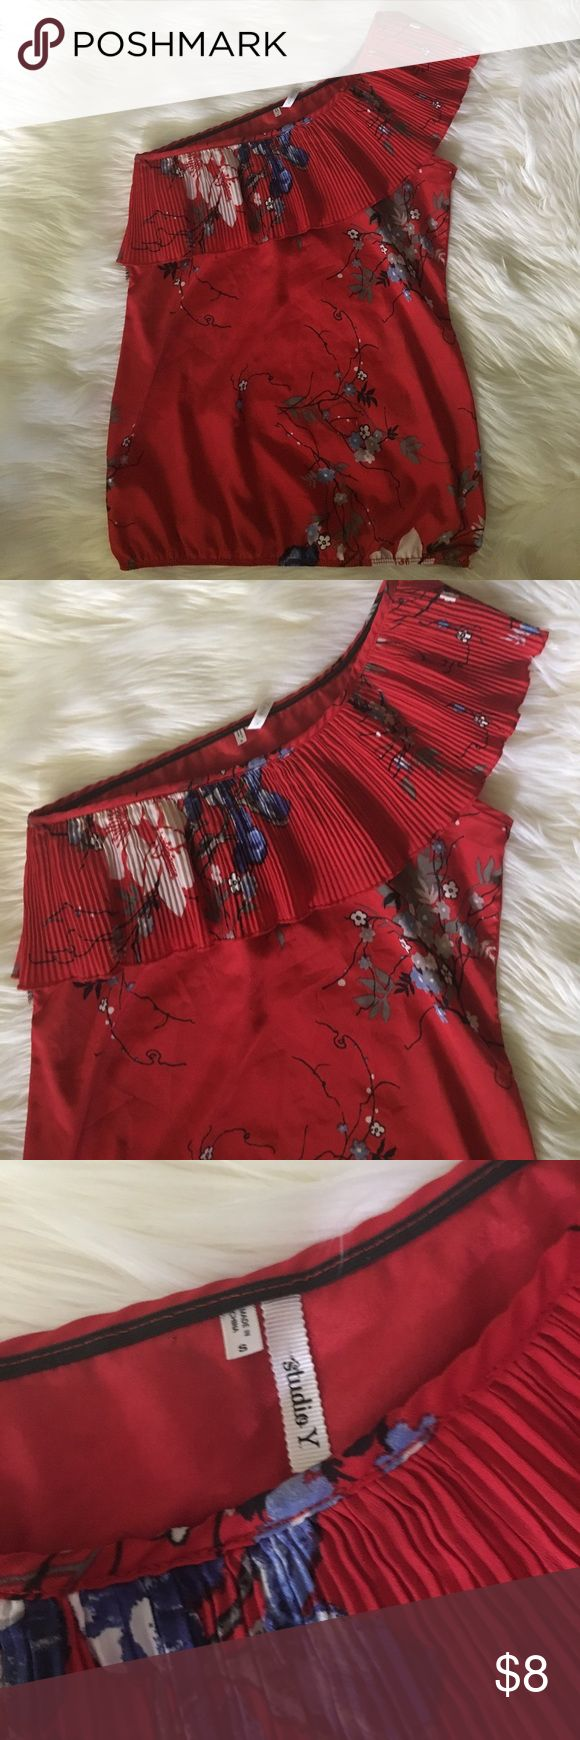 Studio Y one shoulder top Red floral print one shoulder top. Good used condition. Studio Y. I believe this brand is sold at Maurice's? There is a tear on the side with no sleeve, underneath the ruffle. The ruffle covers it, but I will repair it and update the listing when I do. Studio Y Tops